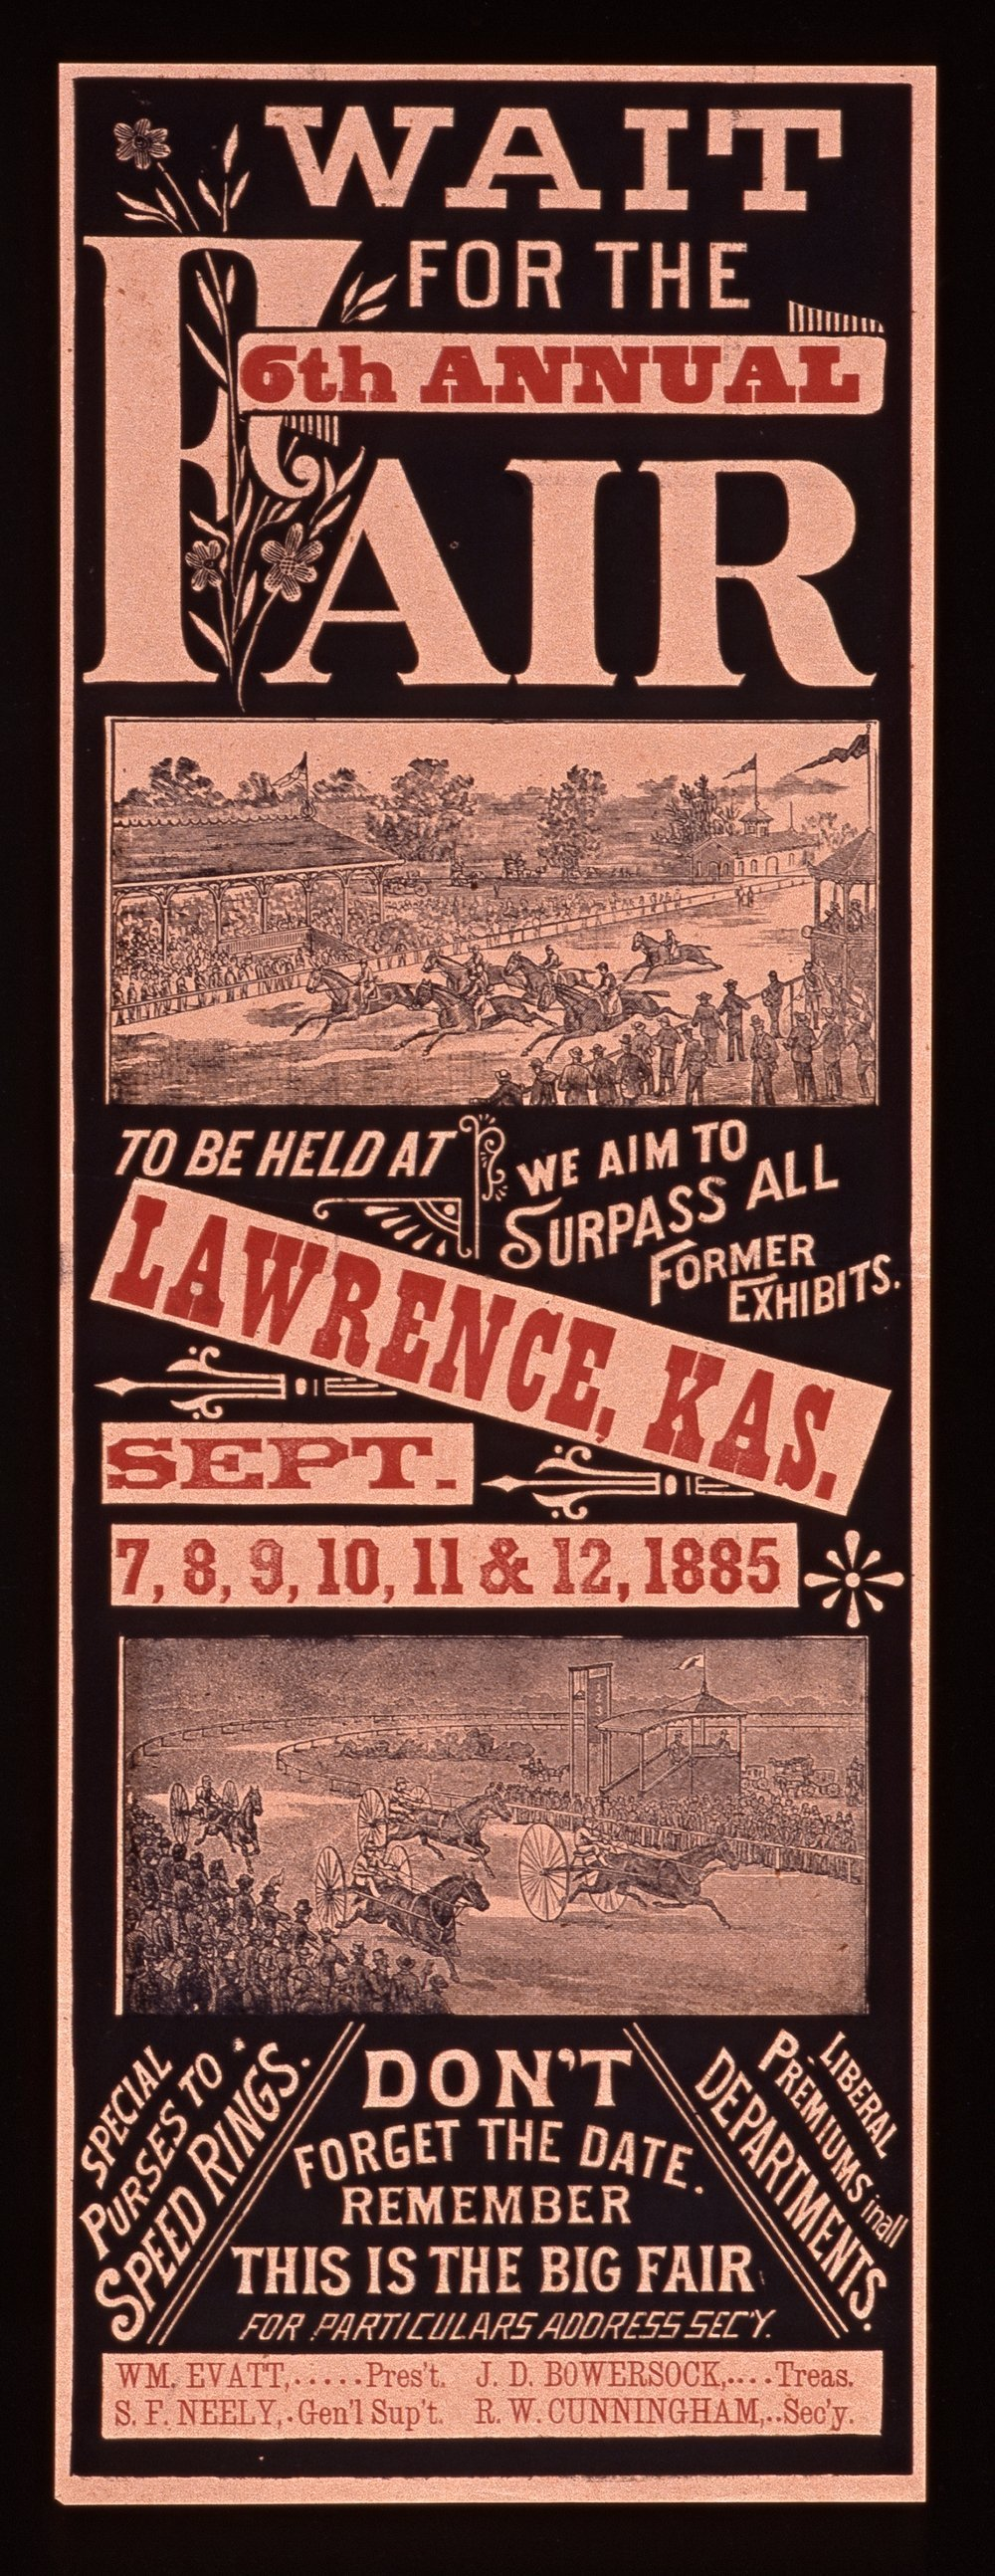 Wait for the sixth annual fair to be held at Lawrence, Kansas